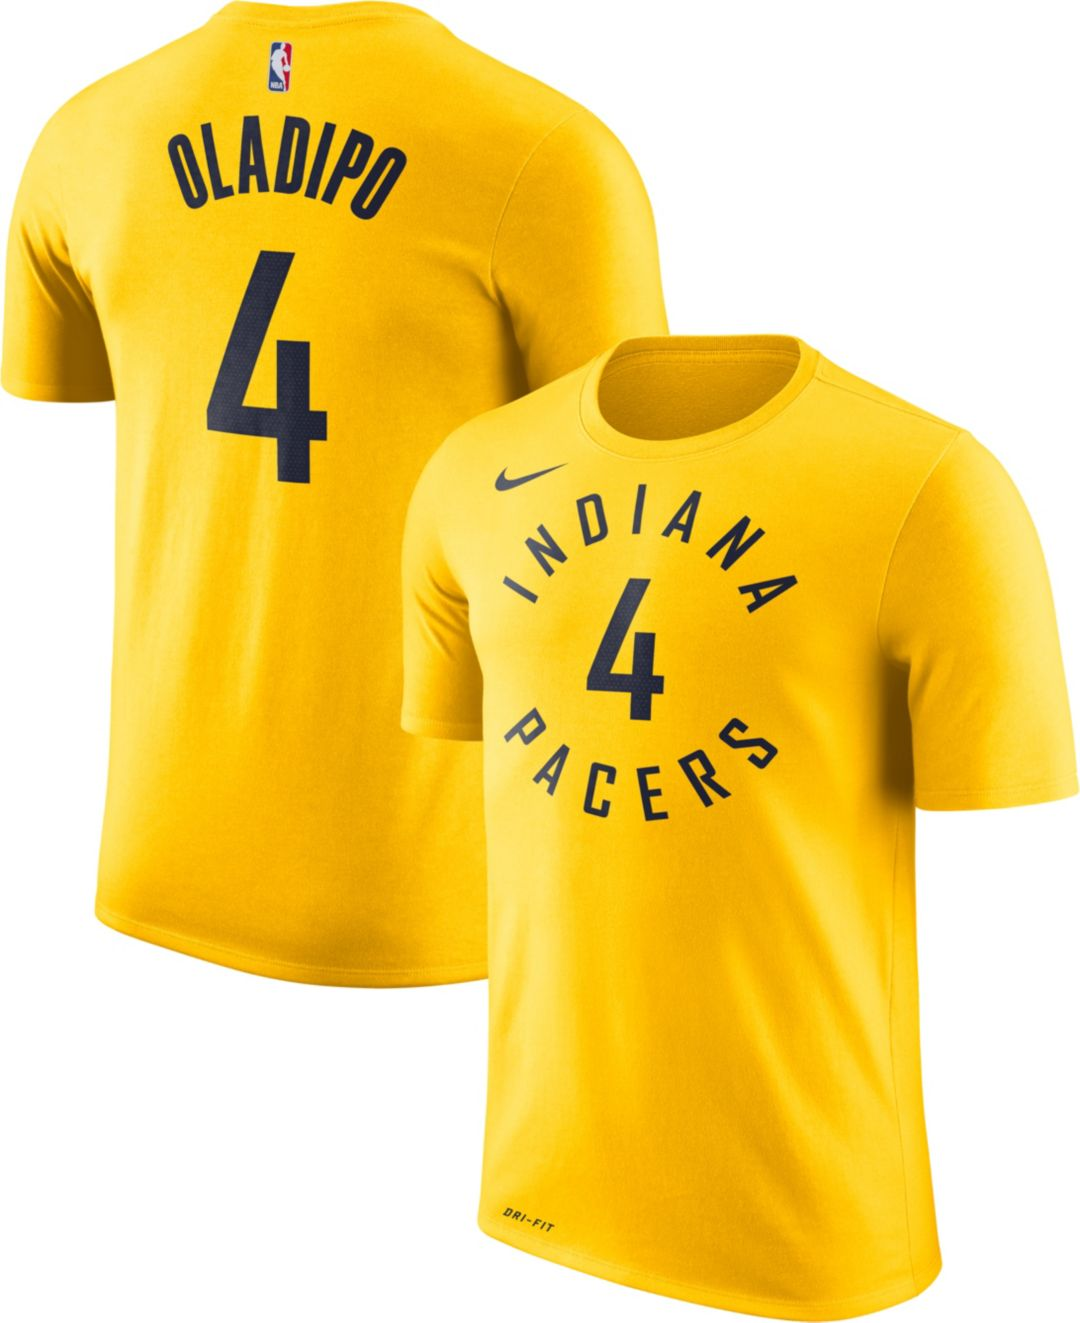 on sale 3dd4d af312 Nike Men's Indiana Pacers Victor Oladipo #4 Dri-FIT Gold T-Shirt